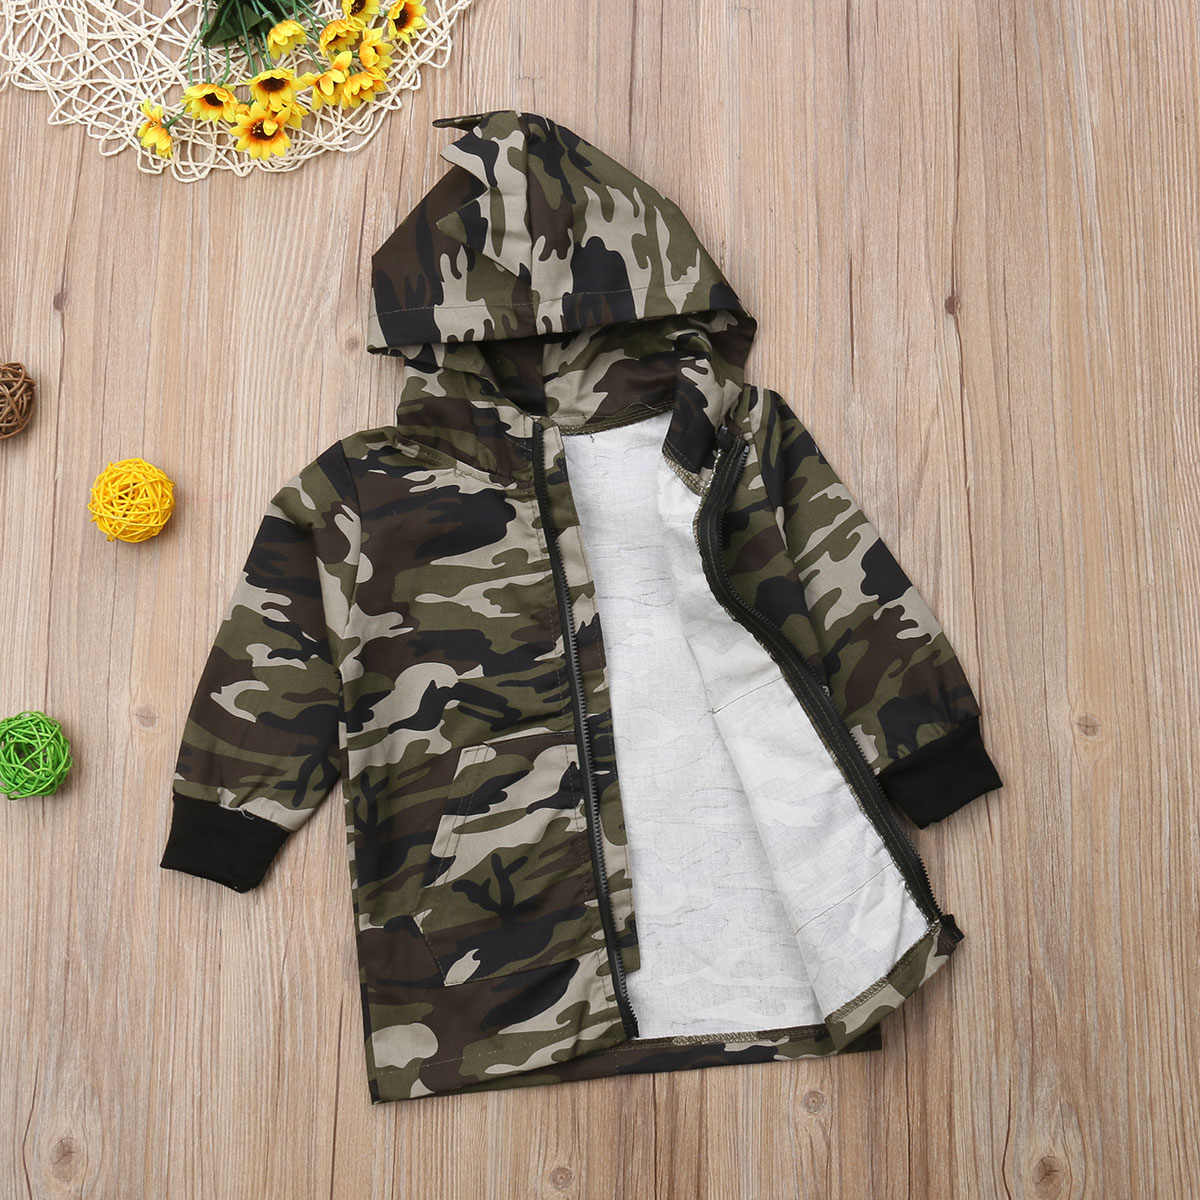 47e3a5341bfb Detail Feedback Questions about 2018 Brand New Fashion Toddler Kids ...